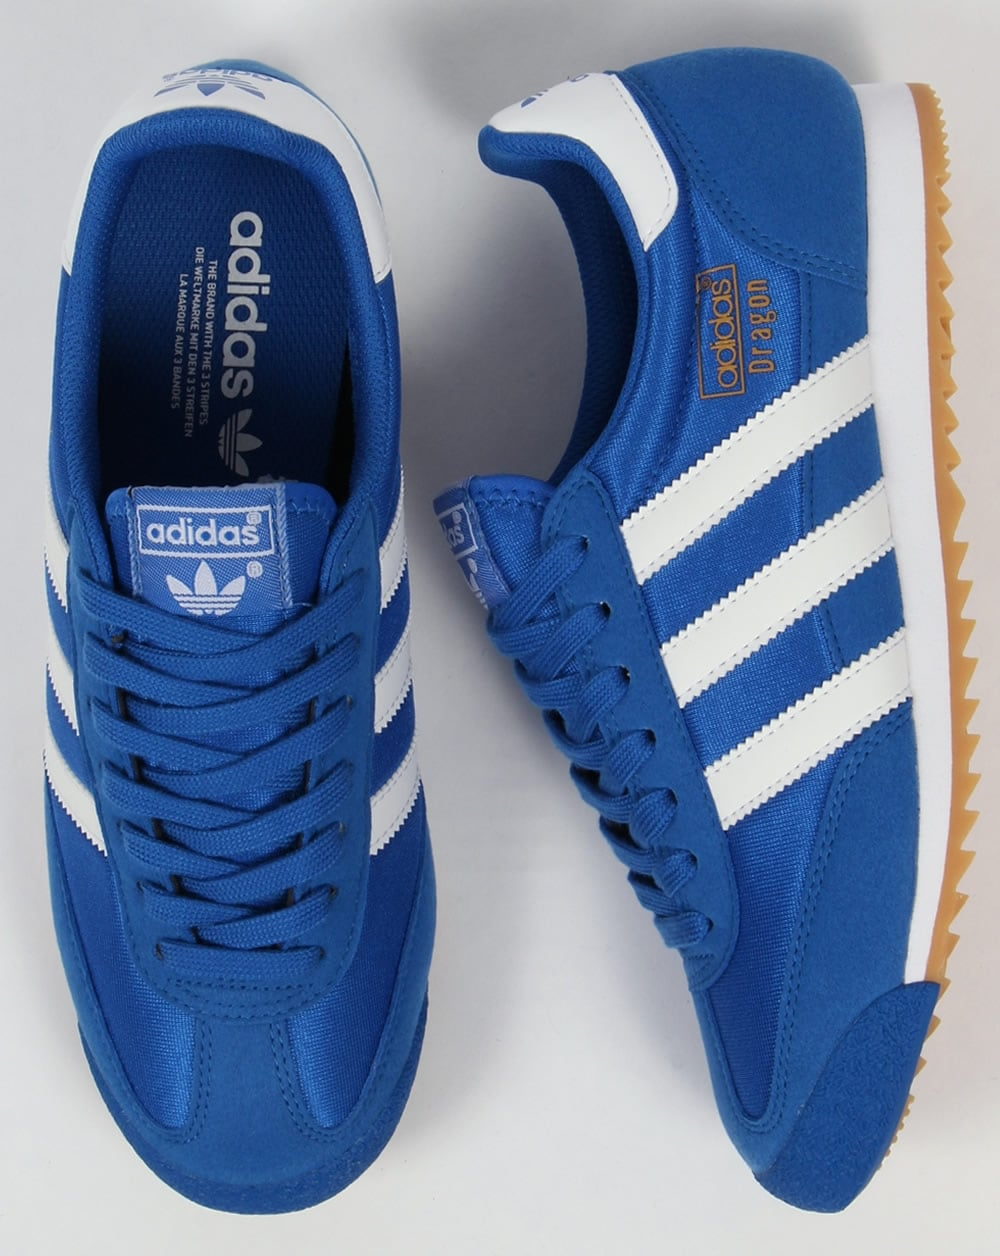 Adidas Dragon Trainers Blue/White,originals,shoes,OG,mens